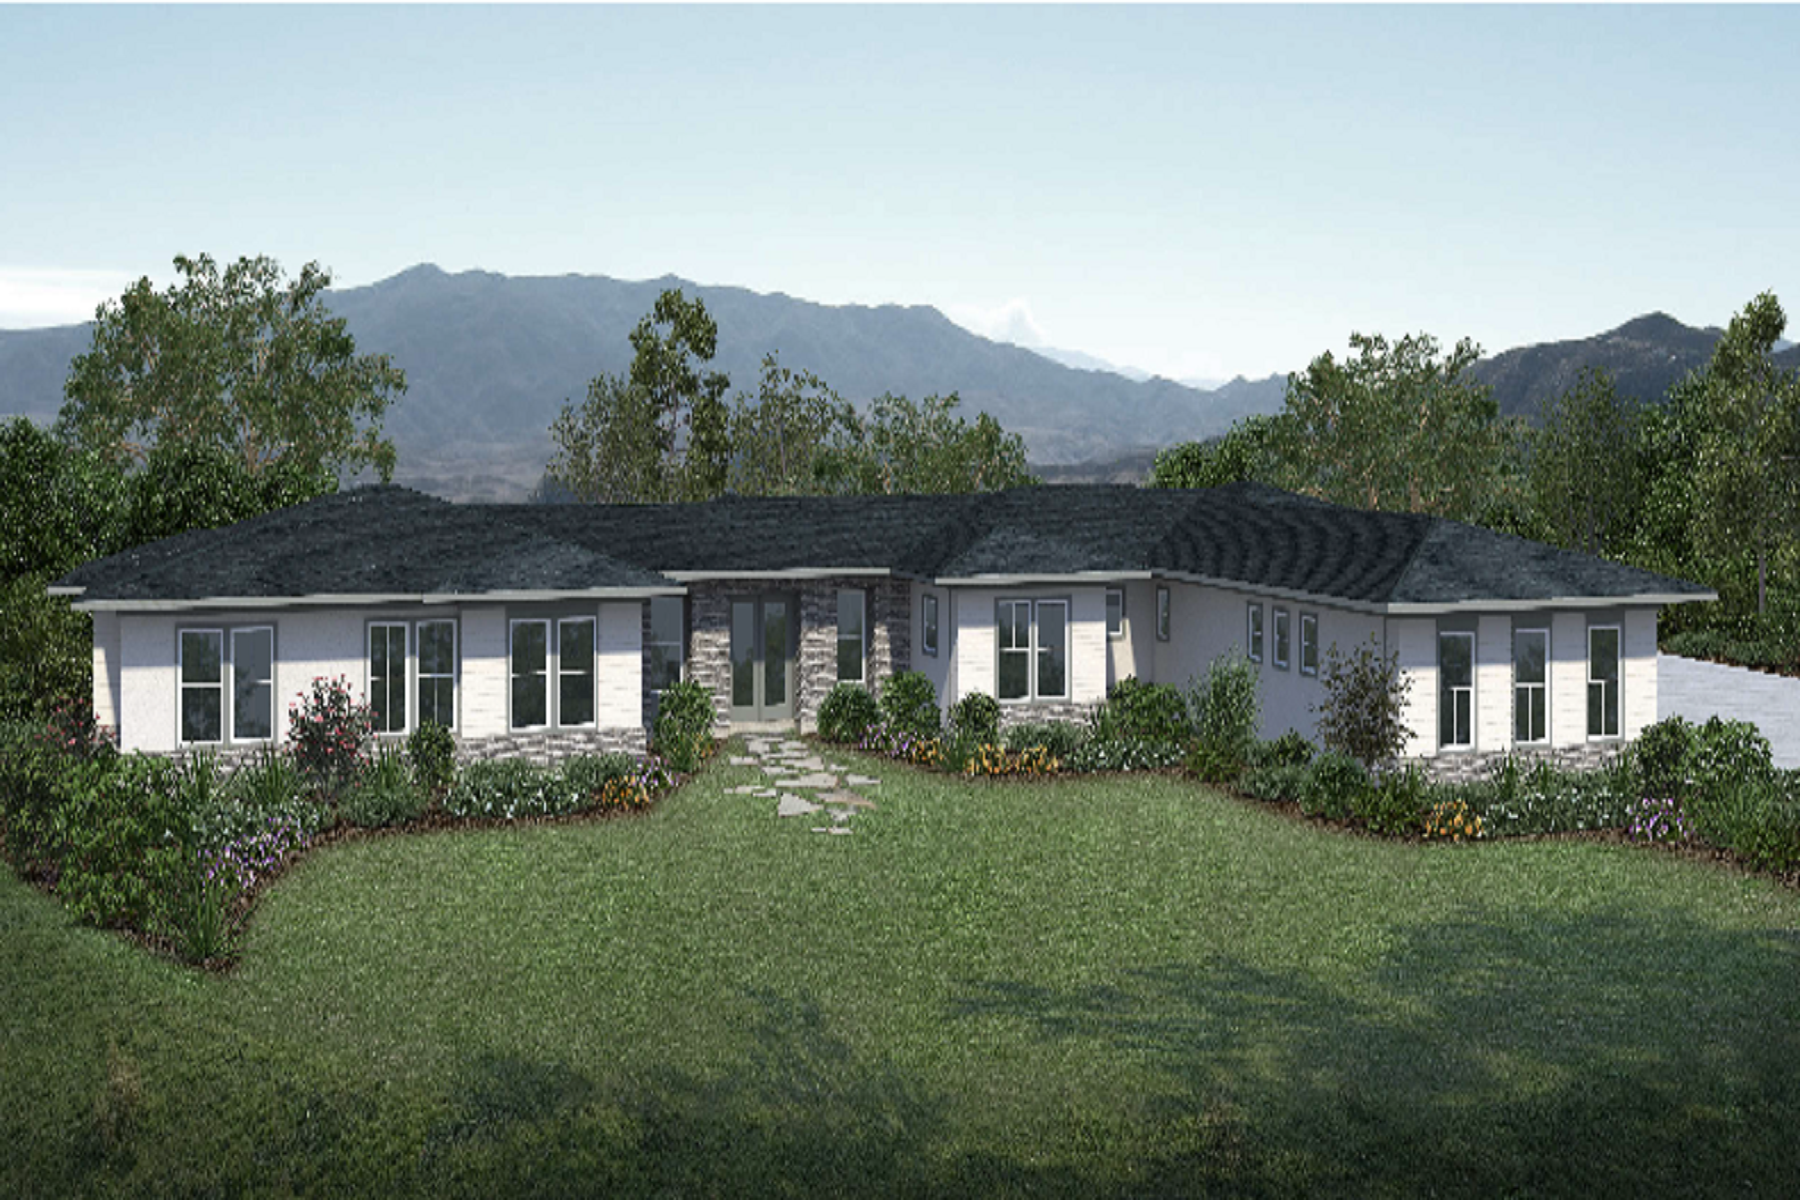 Single Family Home for Active at 15012 Tooth Rock 15012 Toothrock Road Poway, California 92064 United States